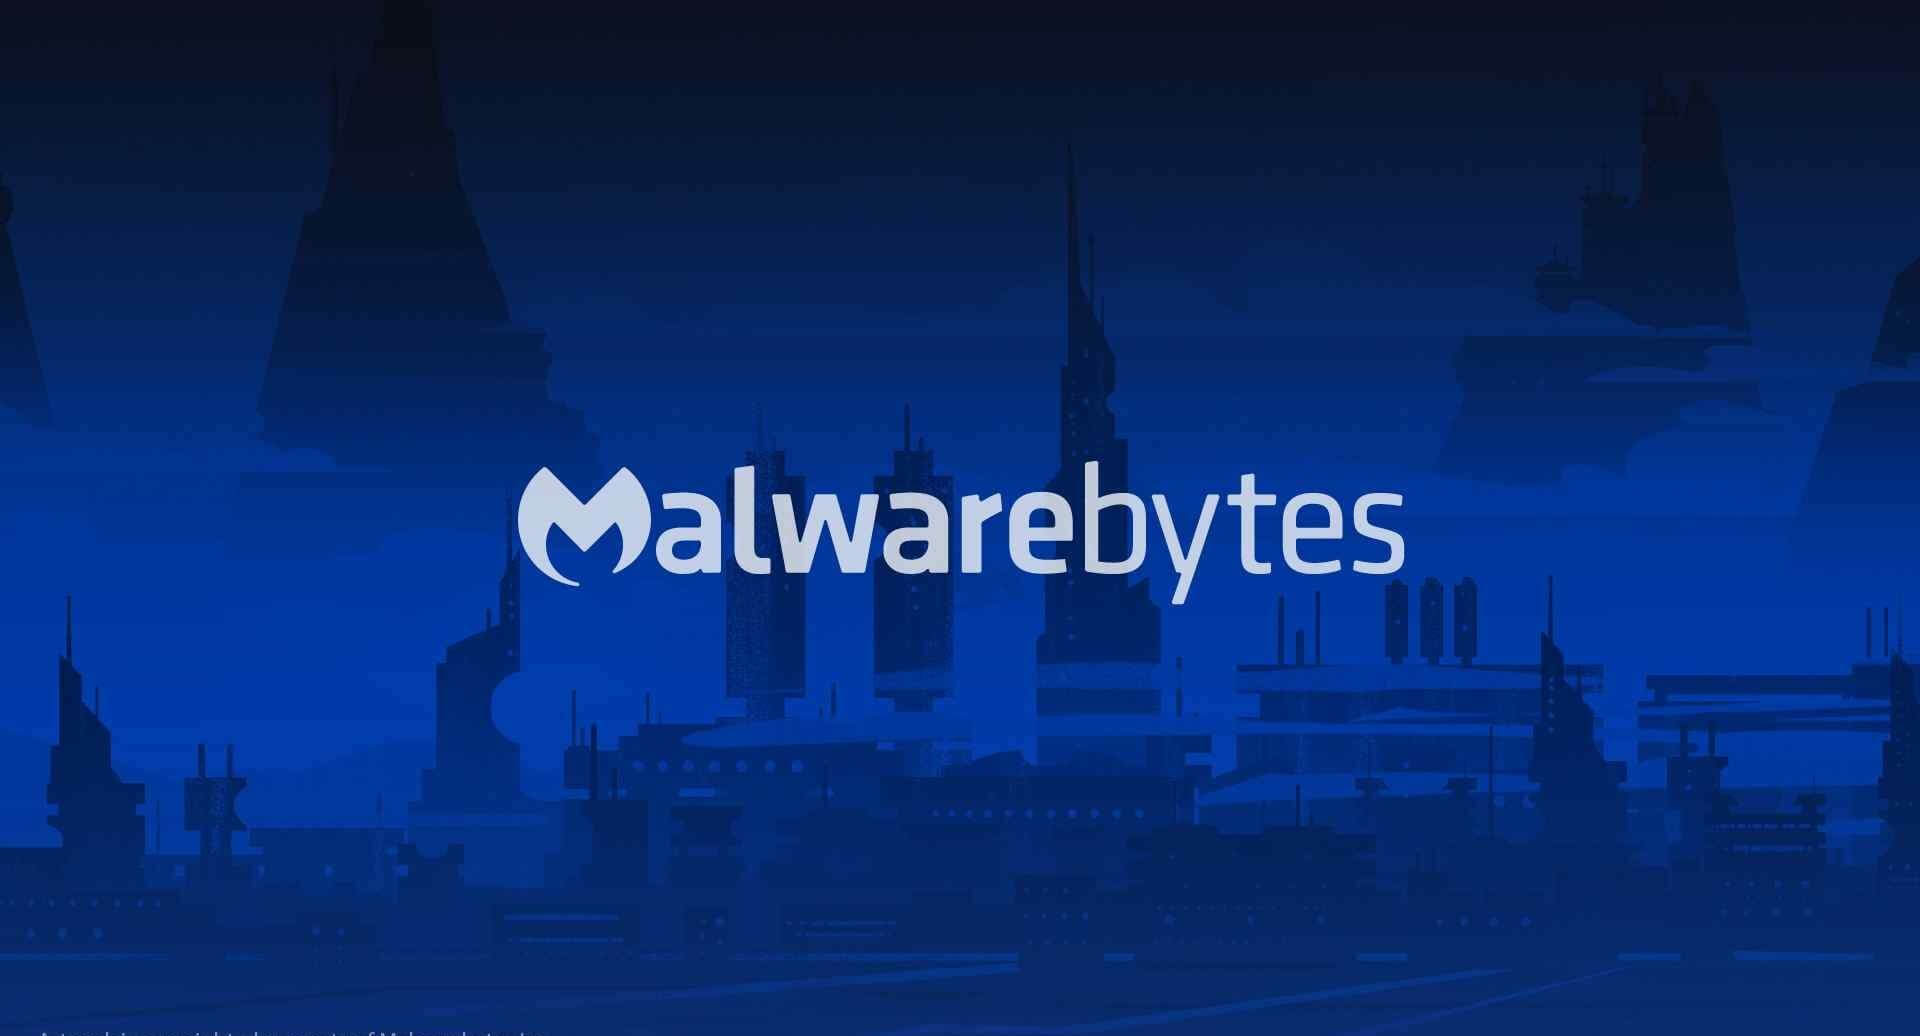 alternative to windows malcious software removal tool - malwarebytes